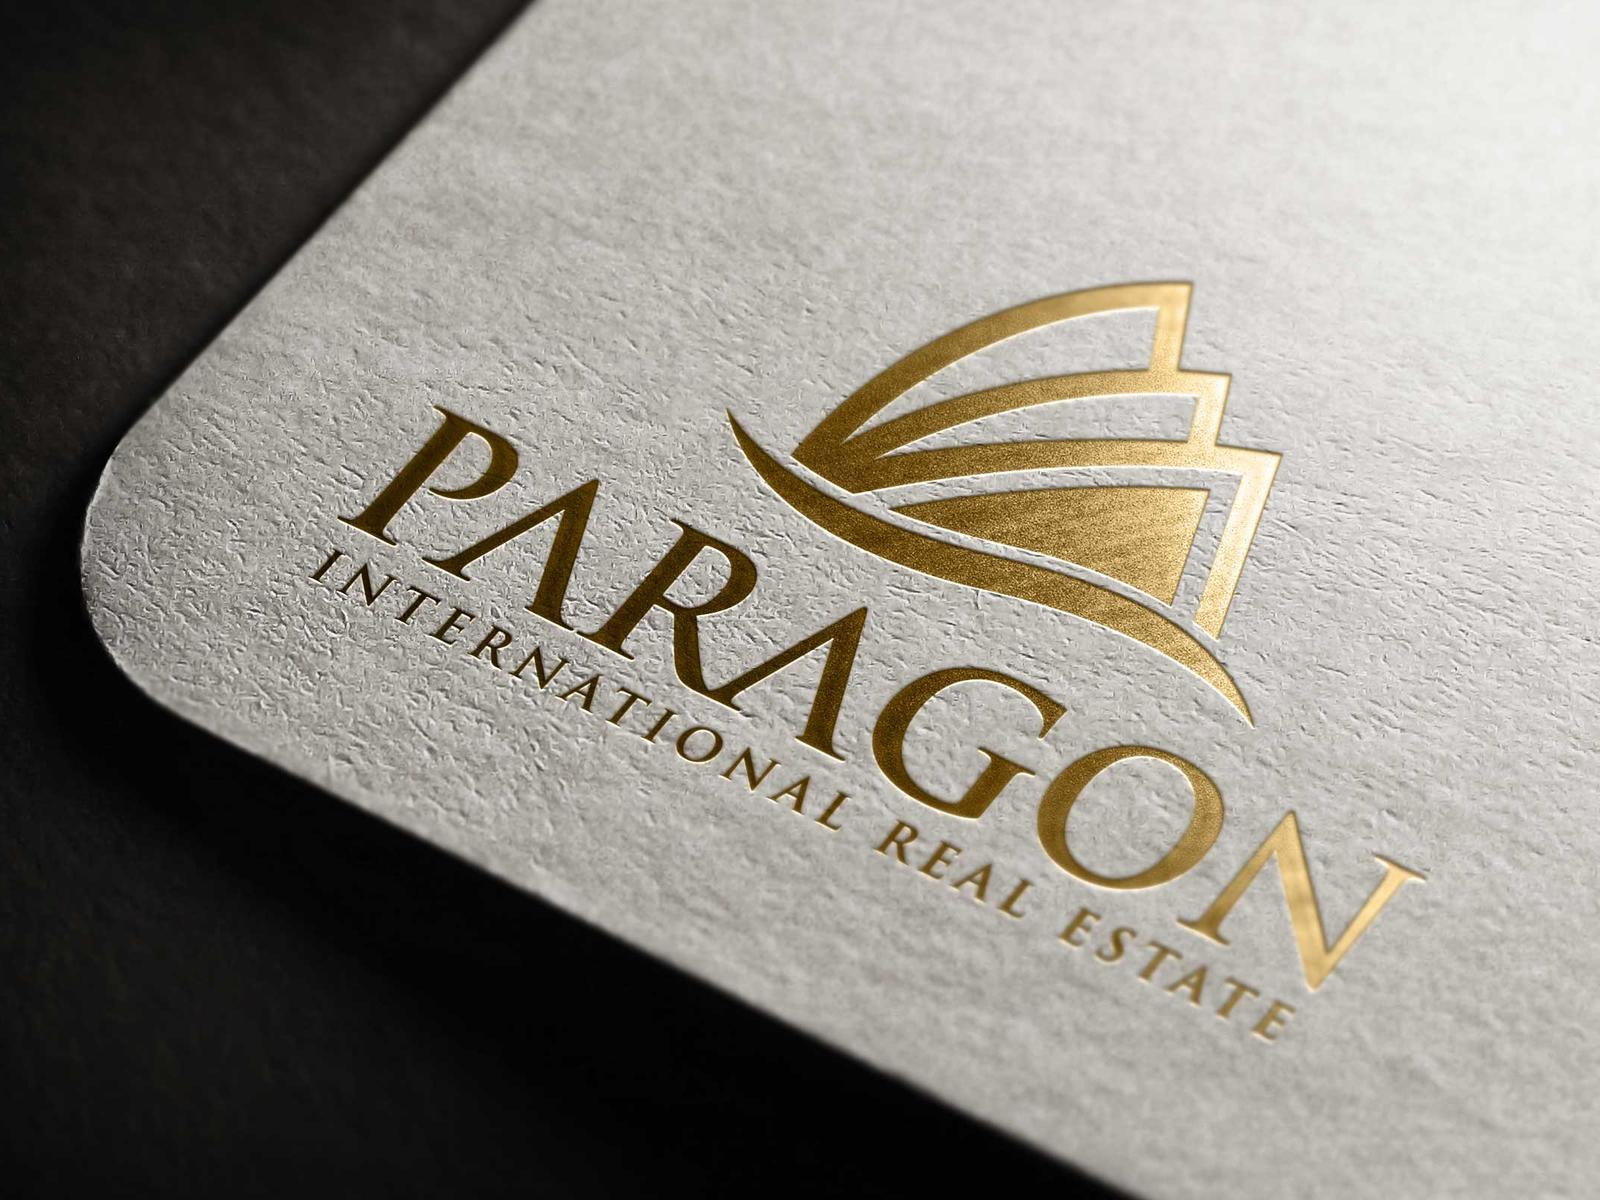 Do a unique logo and business card with creative concept